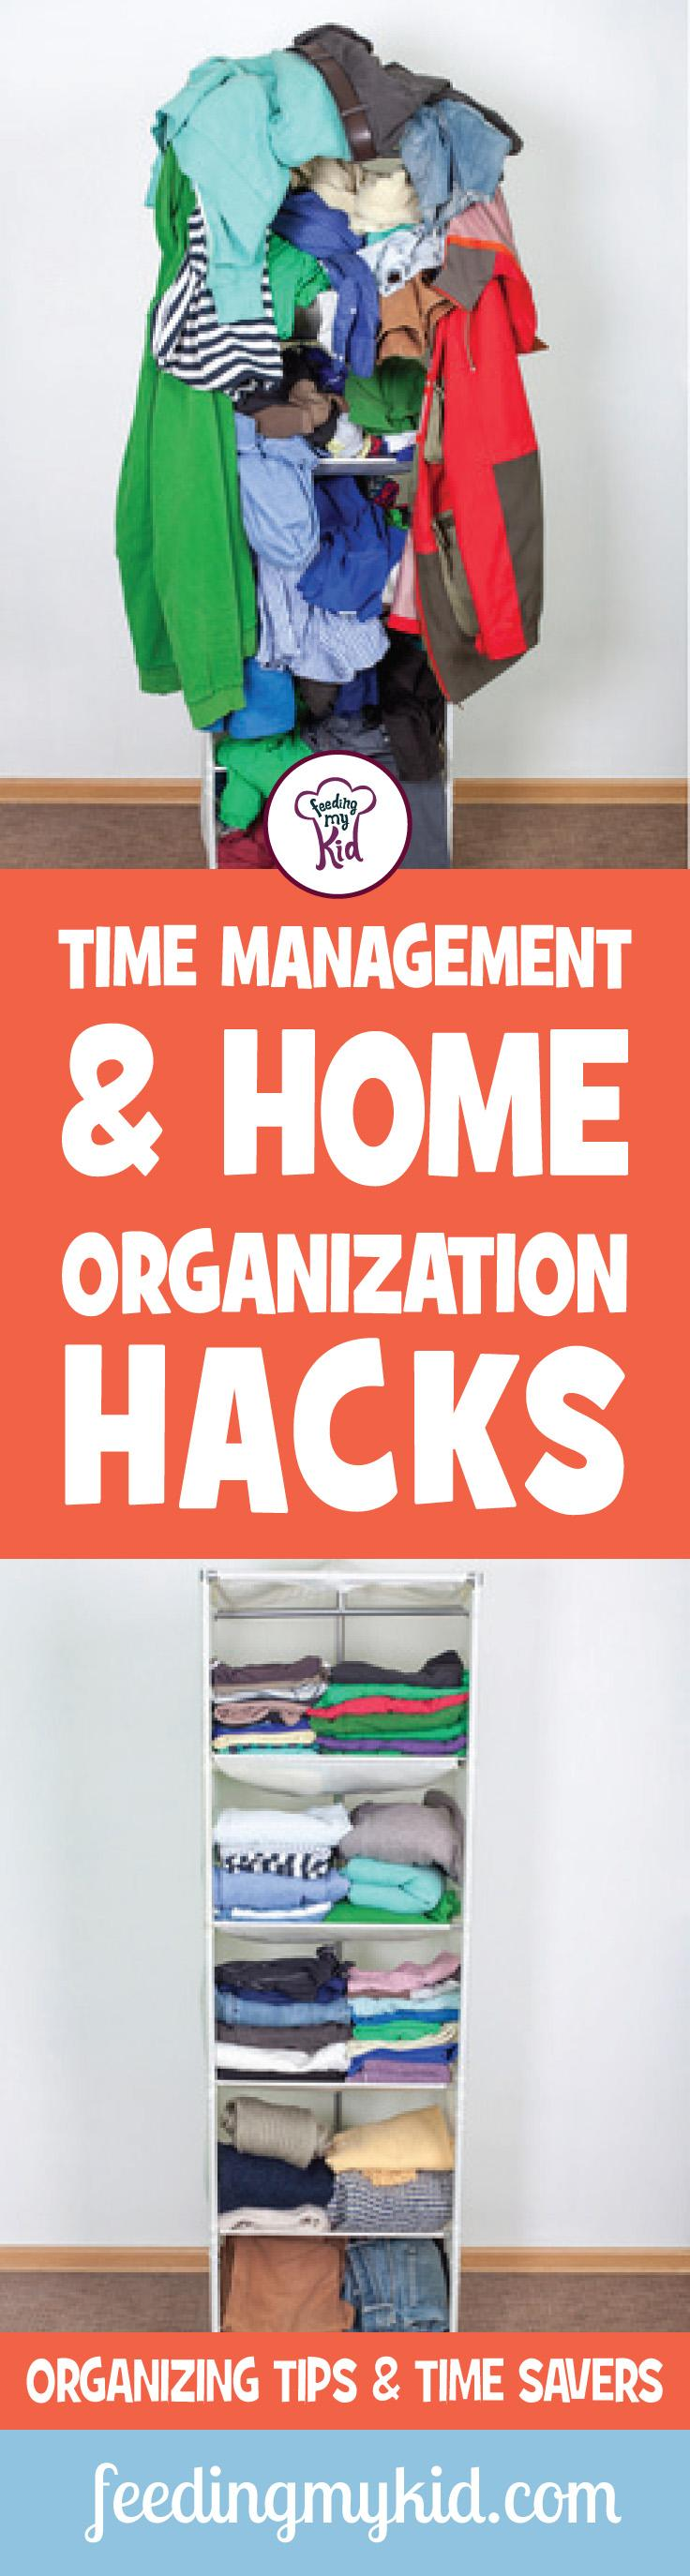 Check out this article for amazing videos and advice on diy organization and learn many organizing tips. Learn how to keep your house clean for good. Feeding My Kid is a website for parents, filled with all the information you need about how to raise your kids, from healthy tips to nutritious recipes. #organizing #parenting #tips